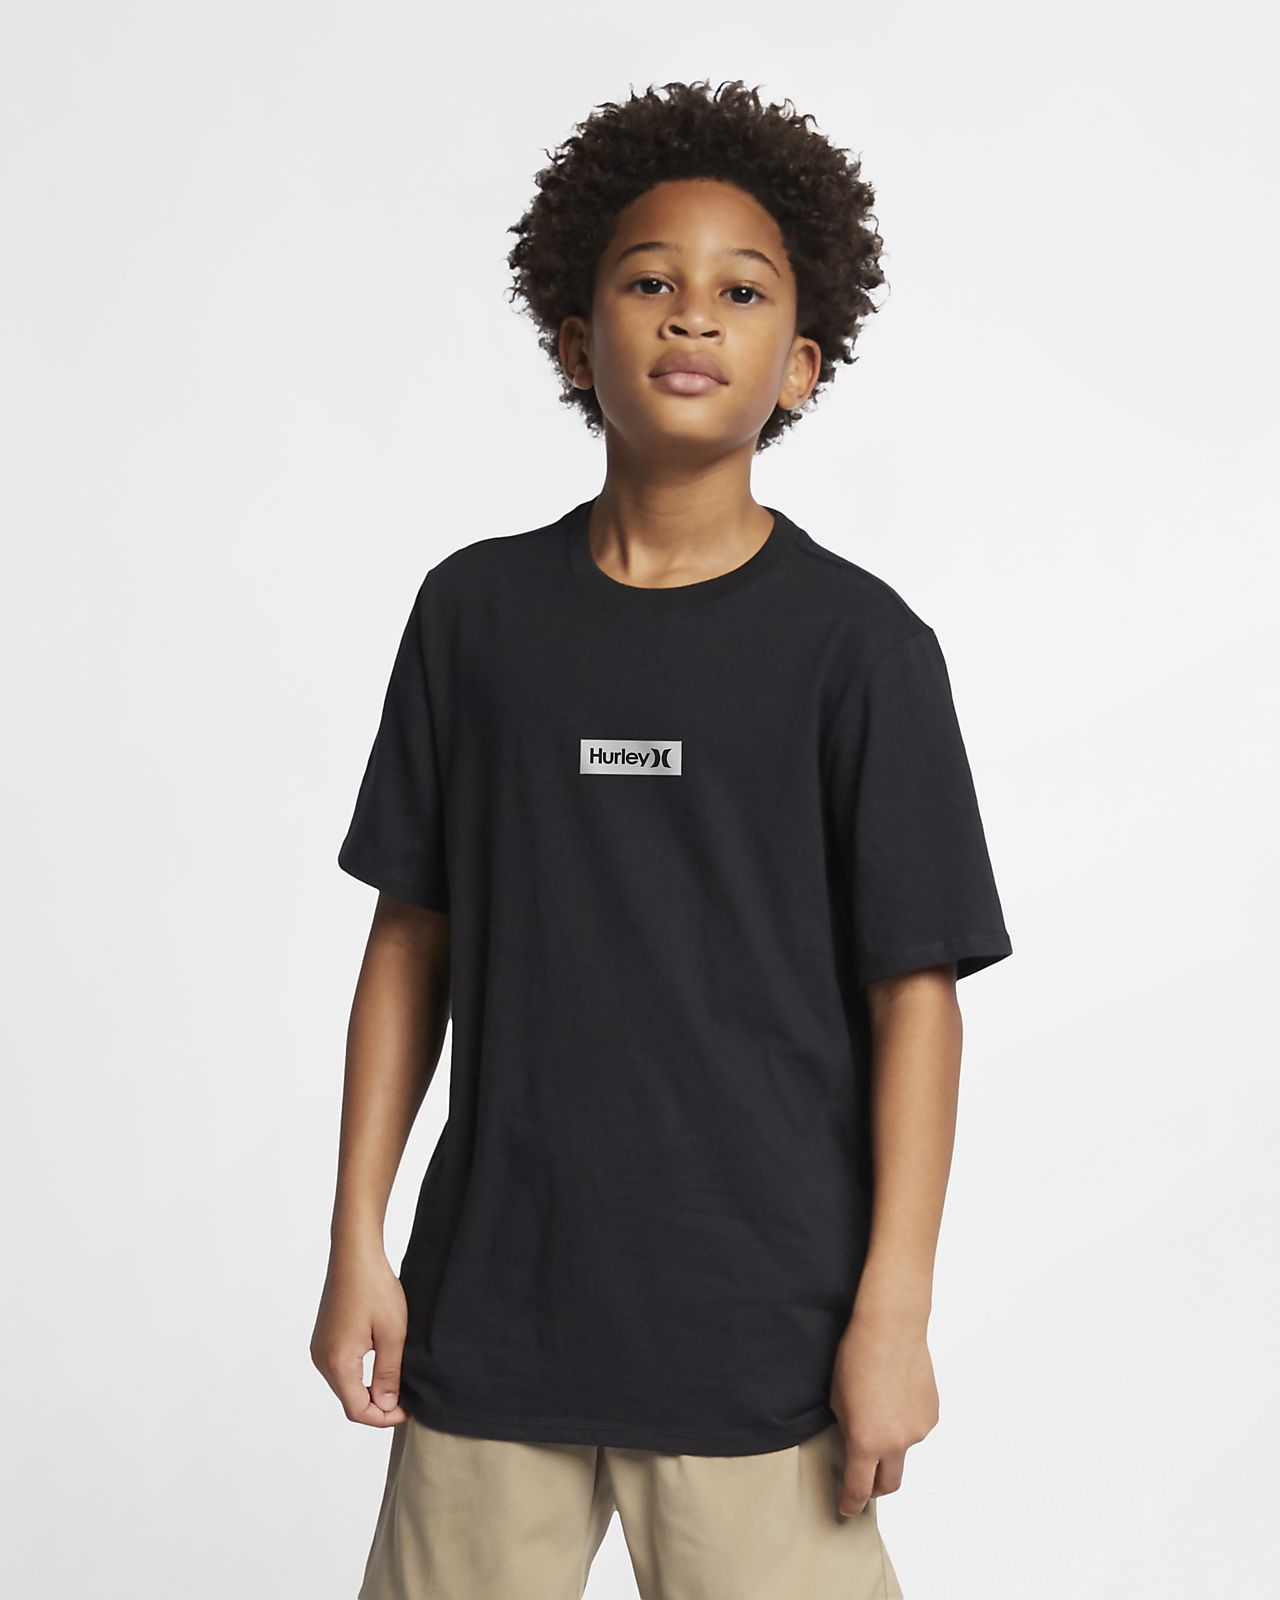 e0c097df47fb22 Hurley Premium One And Only Small Box Jungen-T-Shirt. Nike.com AT